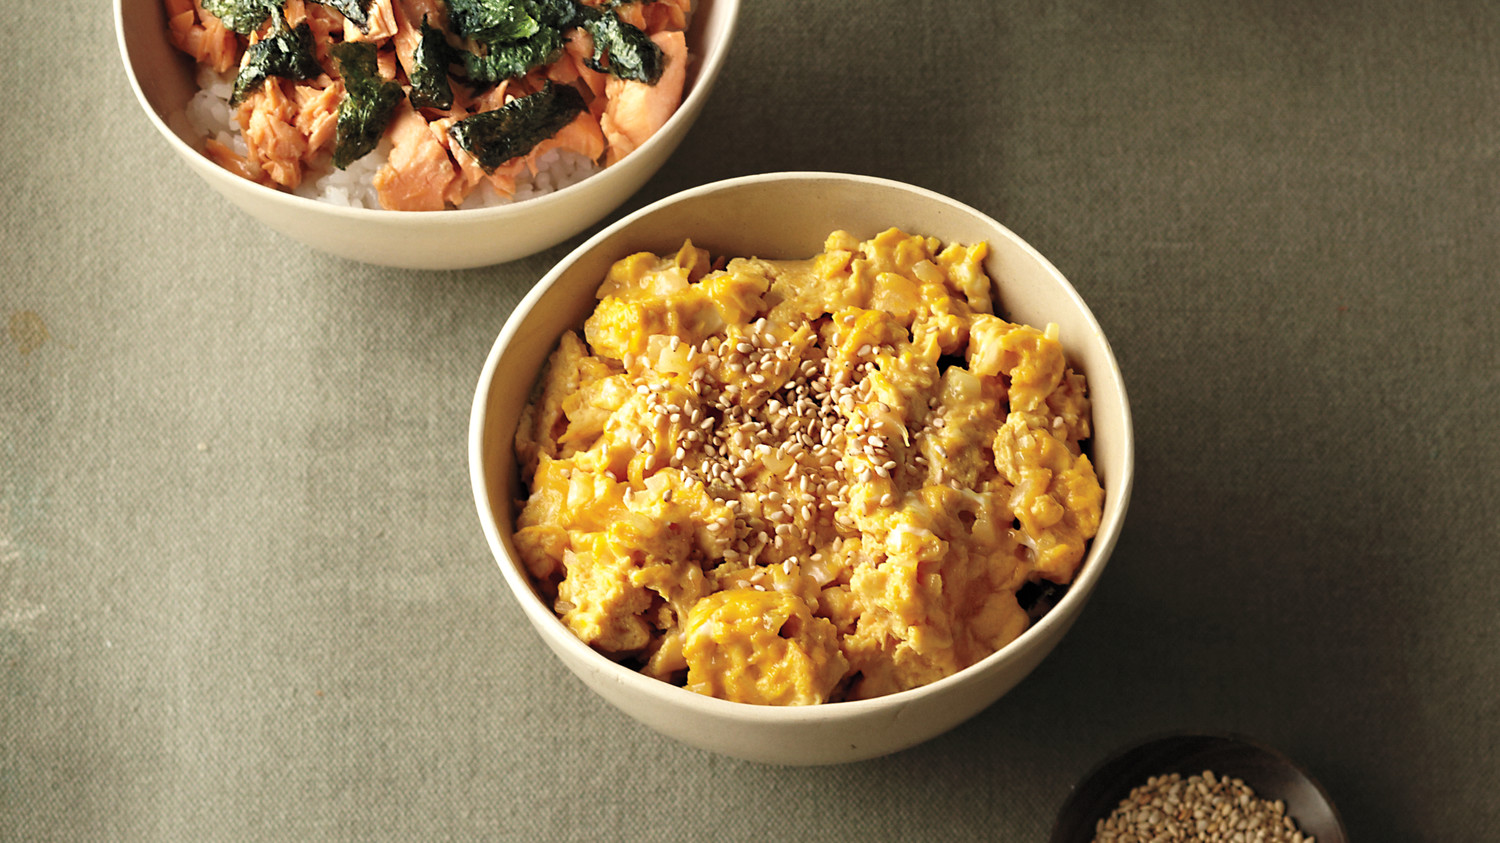 Nobu S Scrambled Eggs Donburi